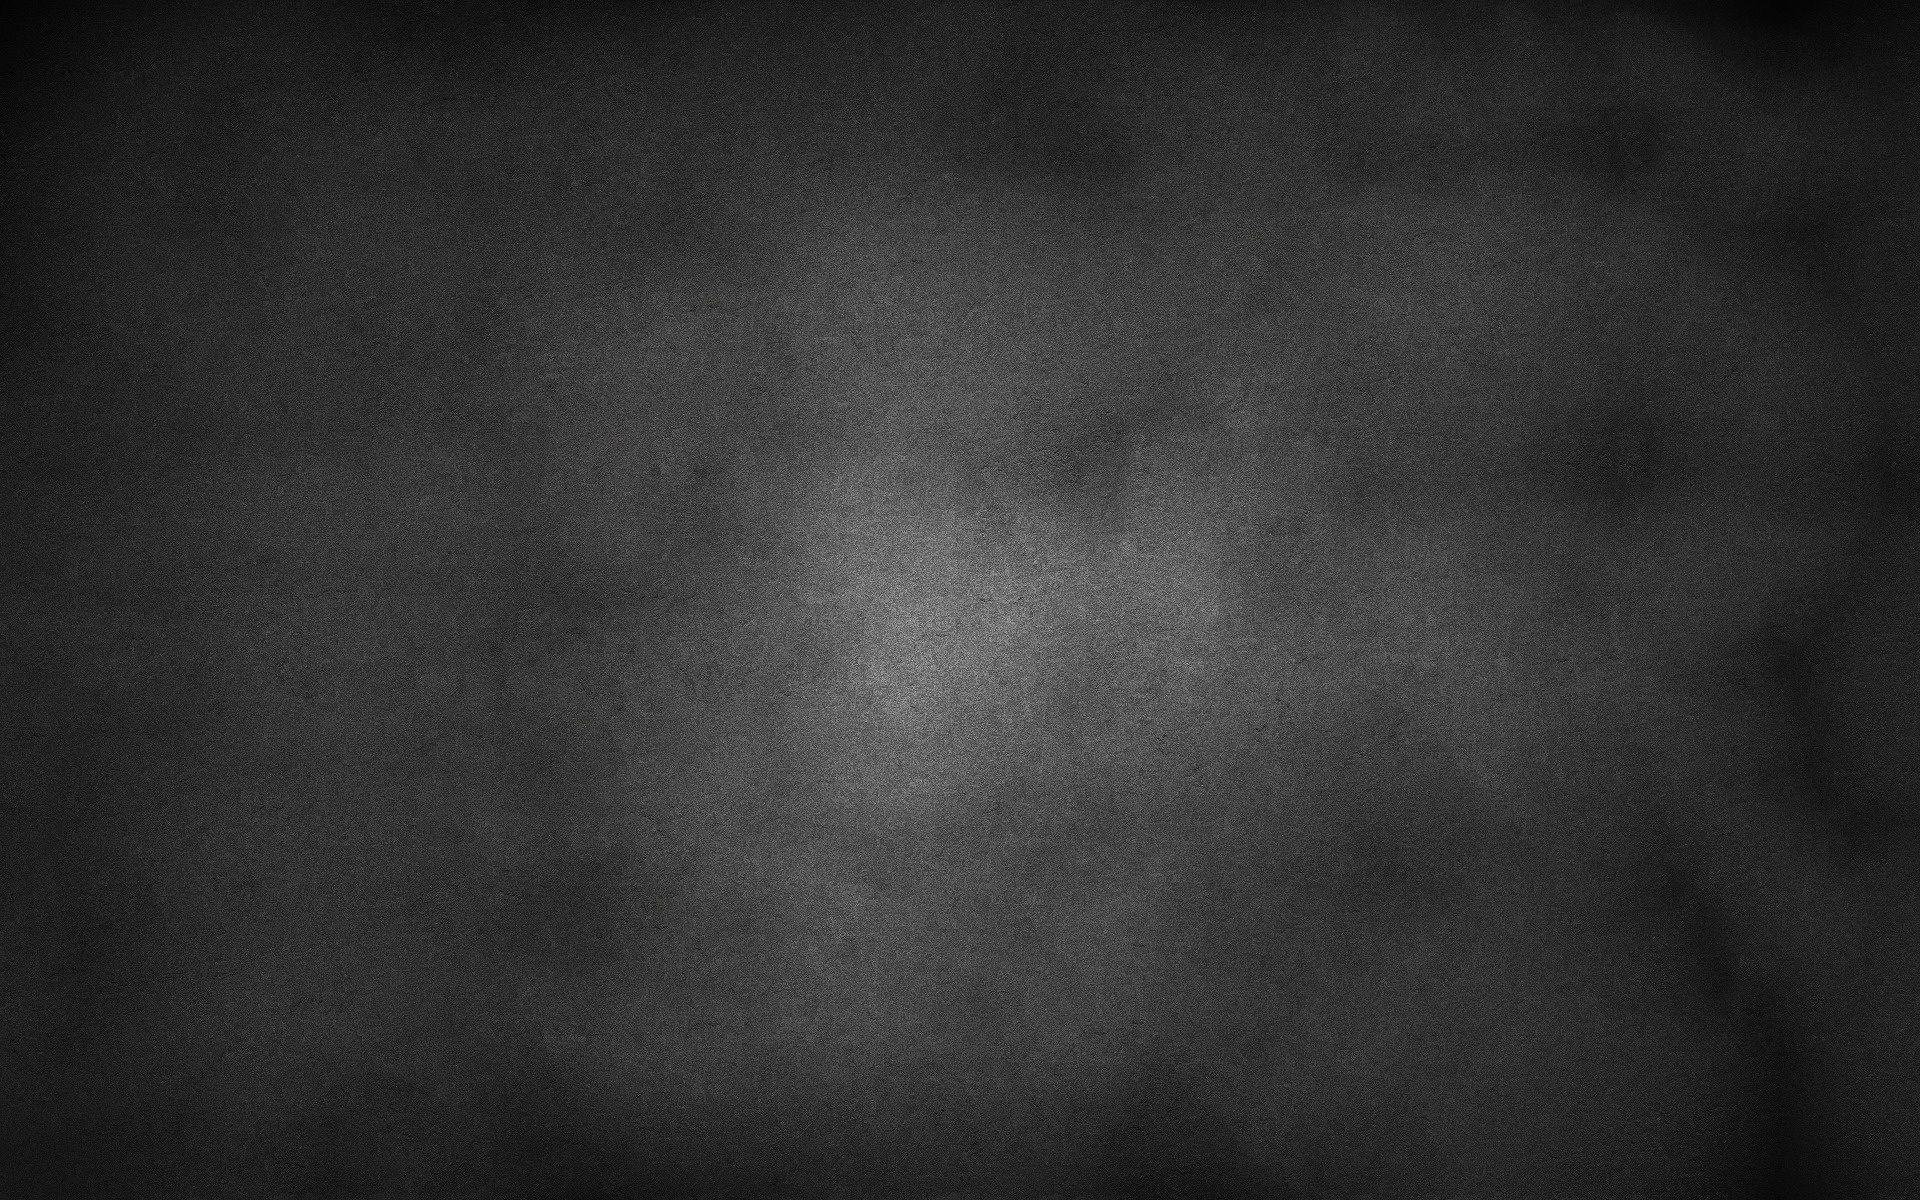 Black and gray backgrounds wallpaper cave for Black and grey wallpaper designs